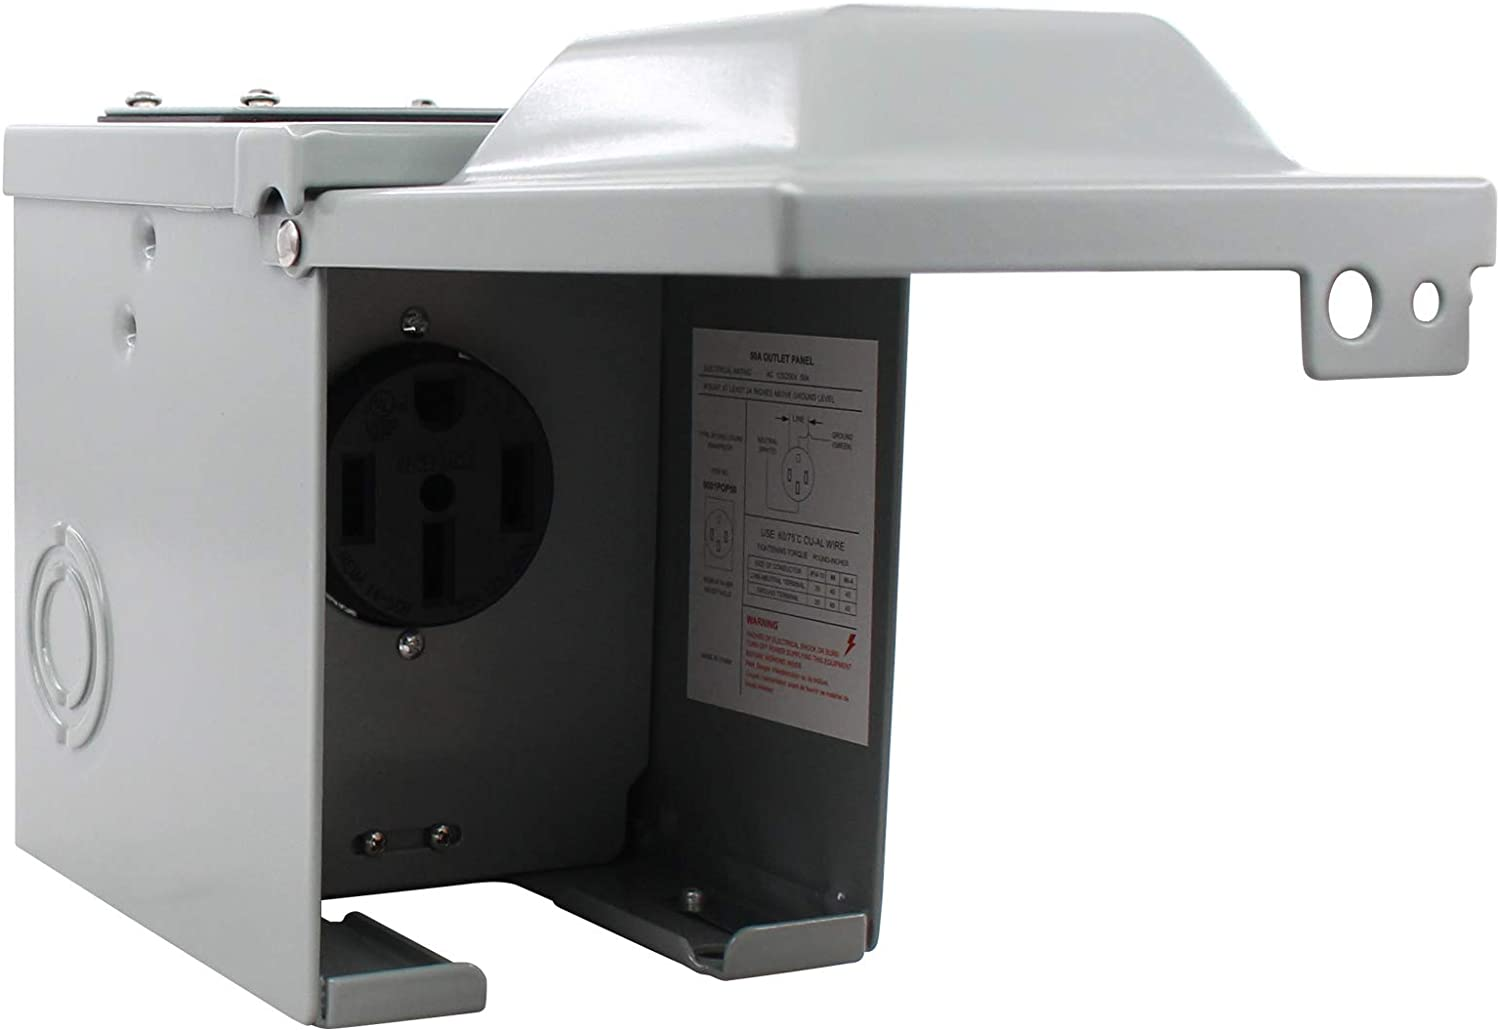 XtremeAmazing RV Power Outlet Box 50 Amp 125/250 Volt Outdoor Receptacle Plug Enclosed Lockable for Camper Travel Trailer Motorhome Electric Car